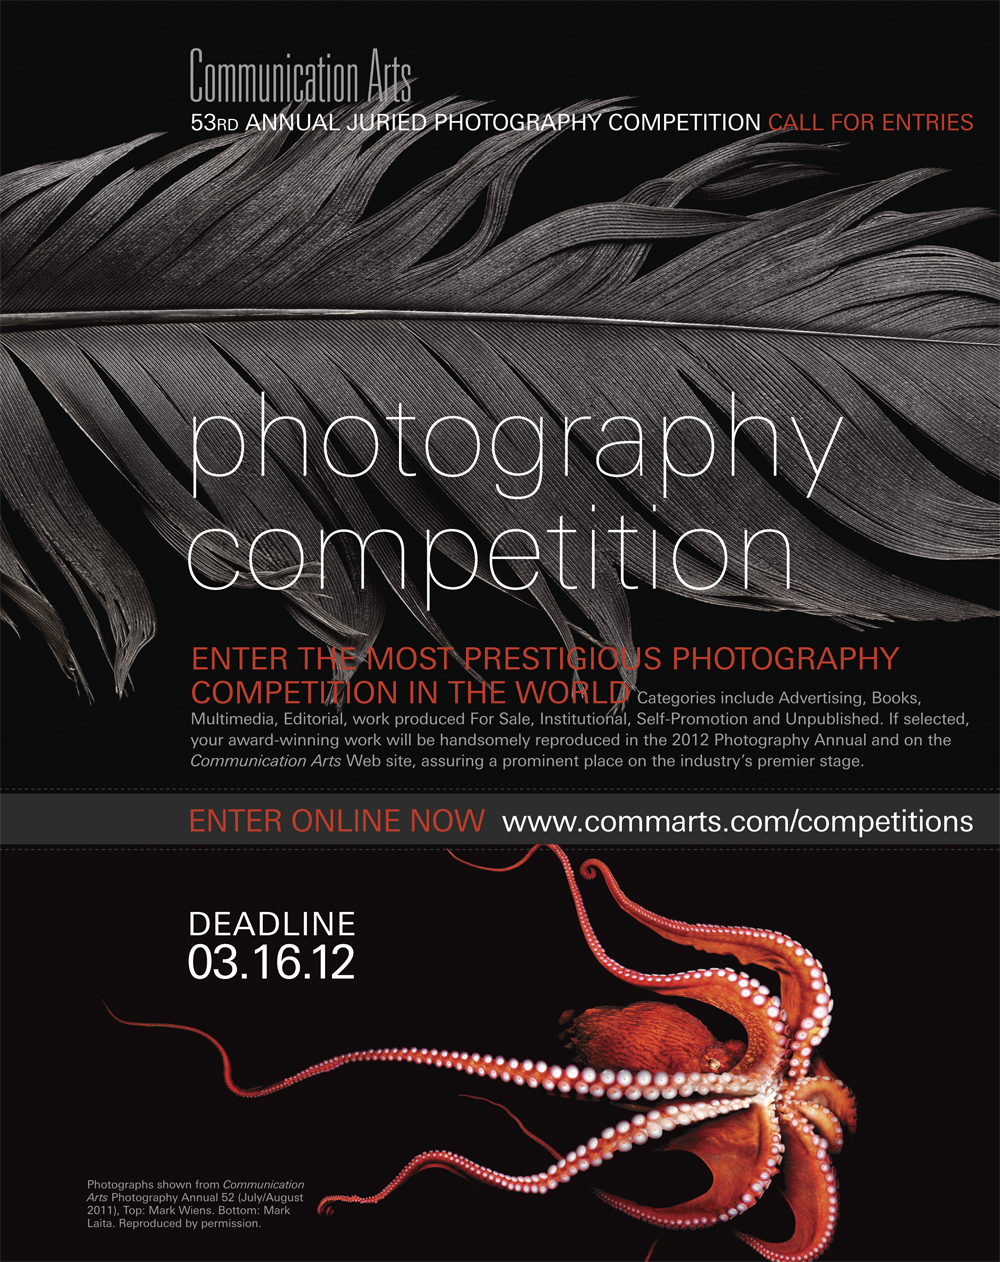 Communication Arts magazine: Photography Competition 2012